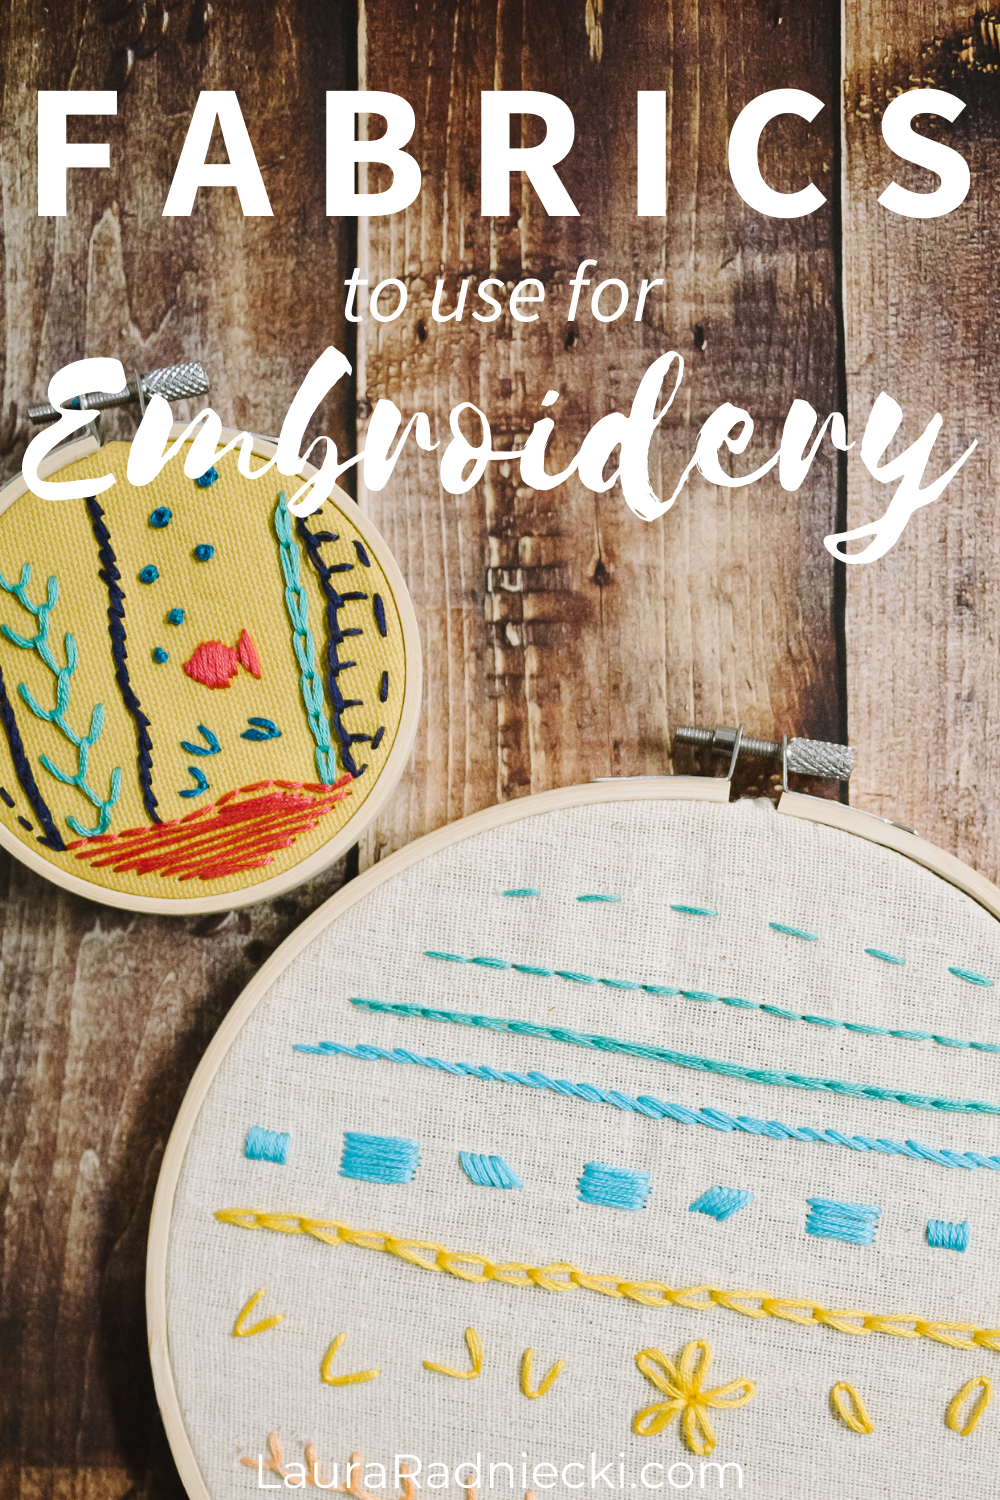 fabrics to use for embroidery